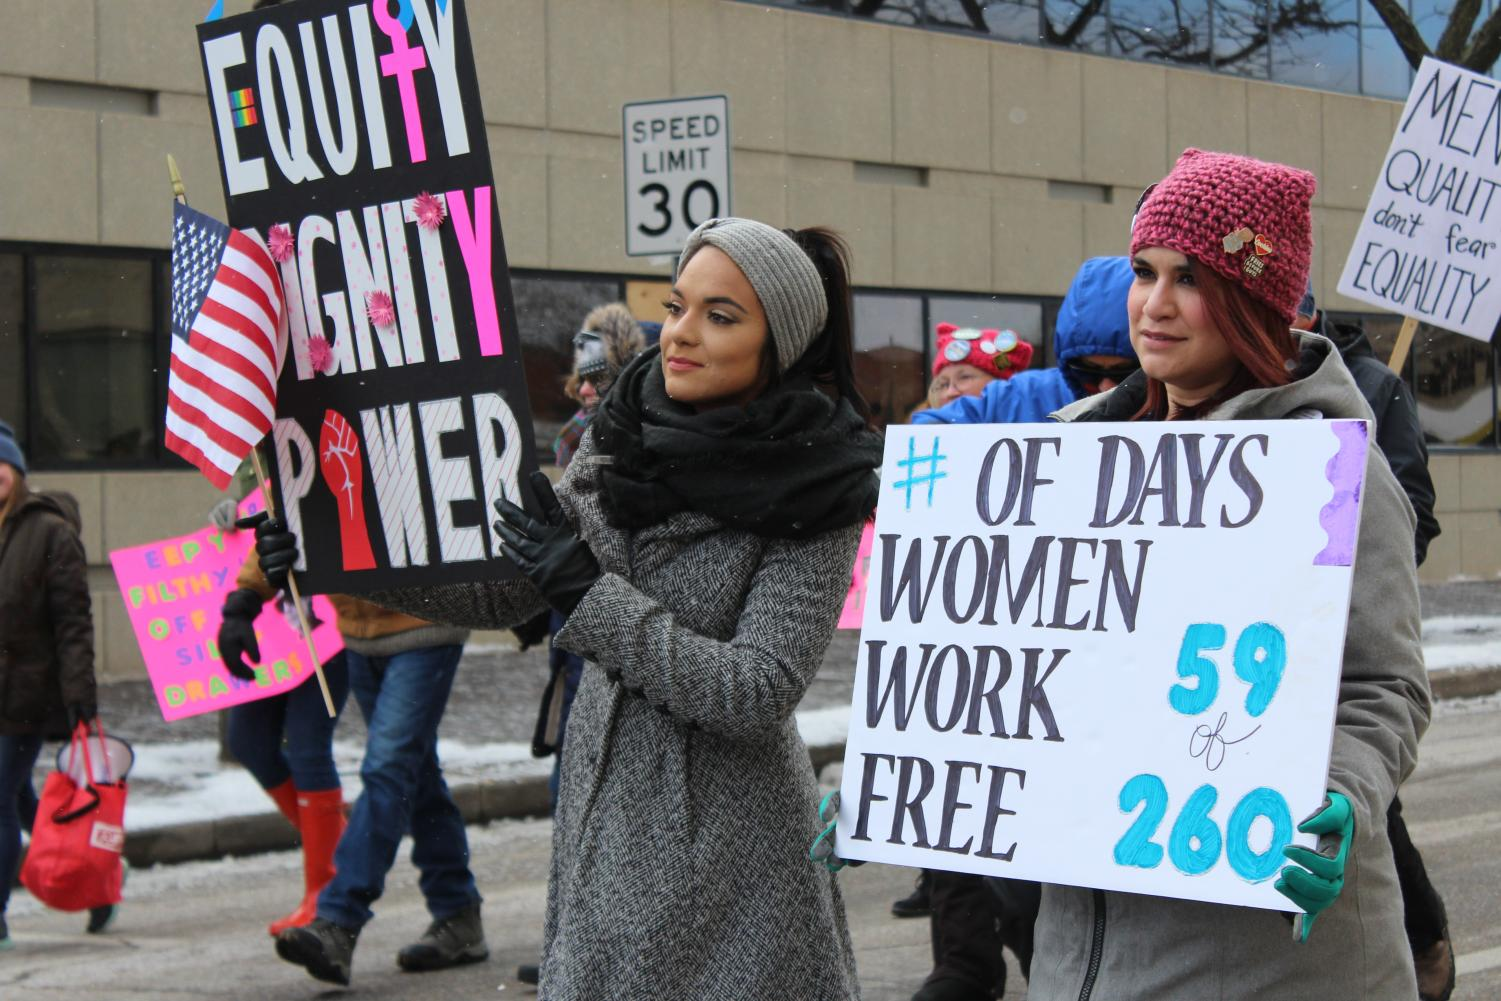 4) Women matched in Wichita for the third annual Women's March - Air Capital. Luisa Taylor (right) spoke at the rally after the march.